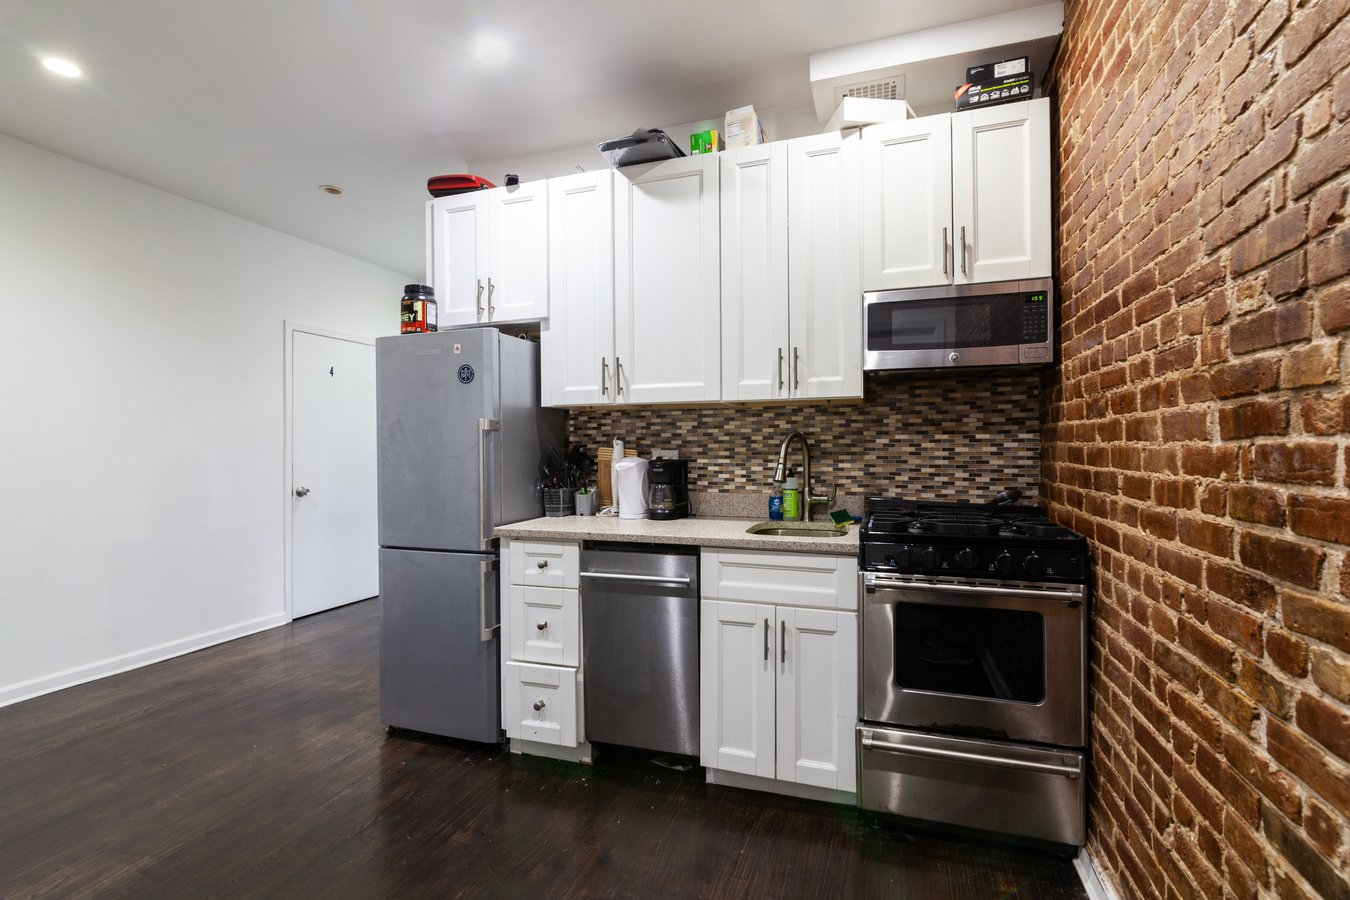 1 Bedroom 1 Bathroom Apartment for rent at Private Room In Multi-bedroom Upper East Side Coliving, Flexible Lease Length in New York, NY